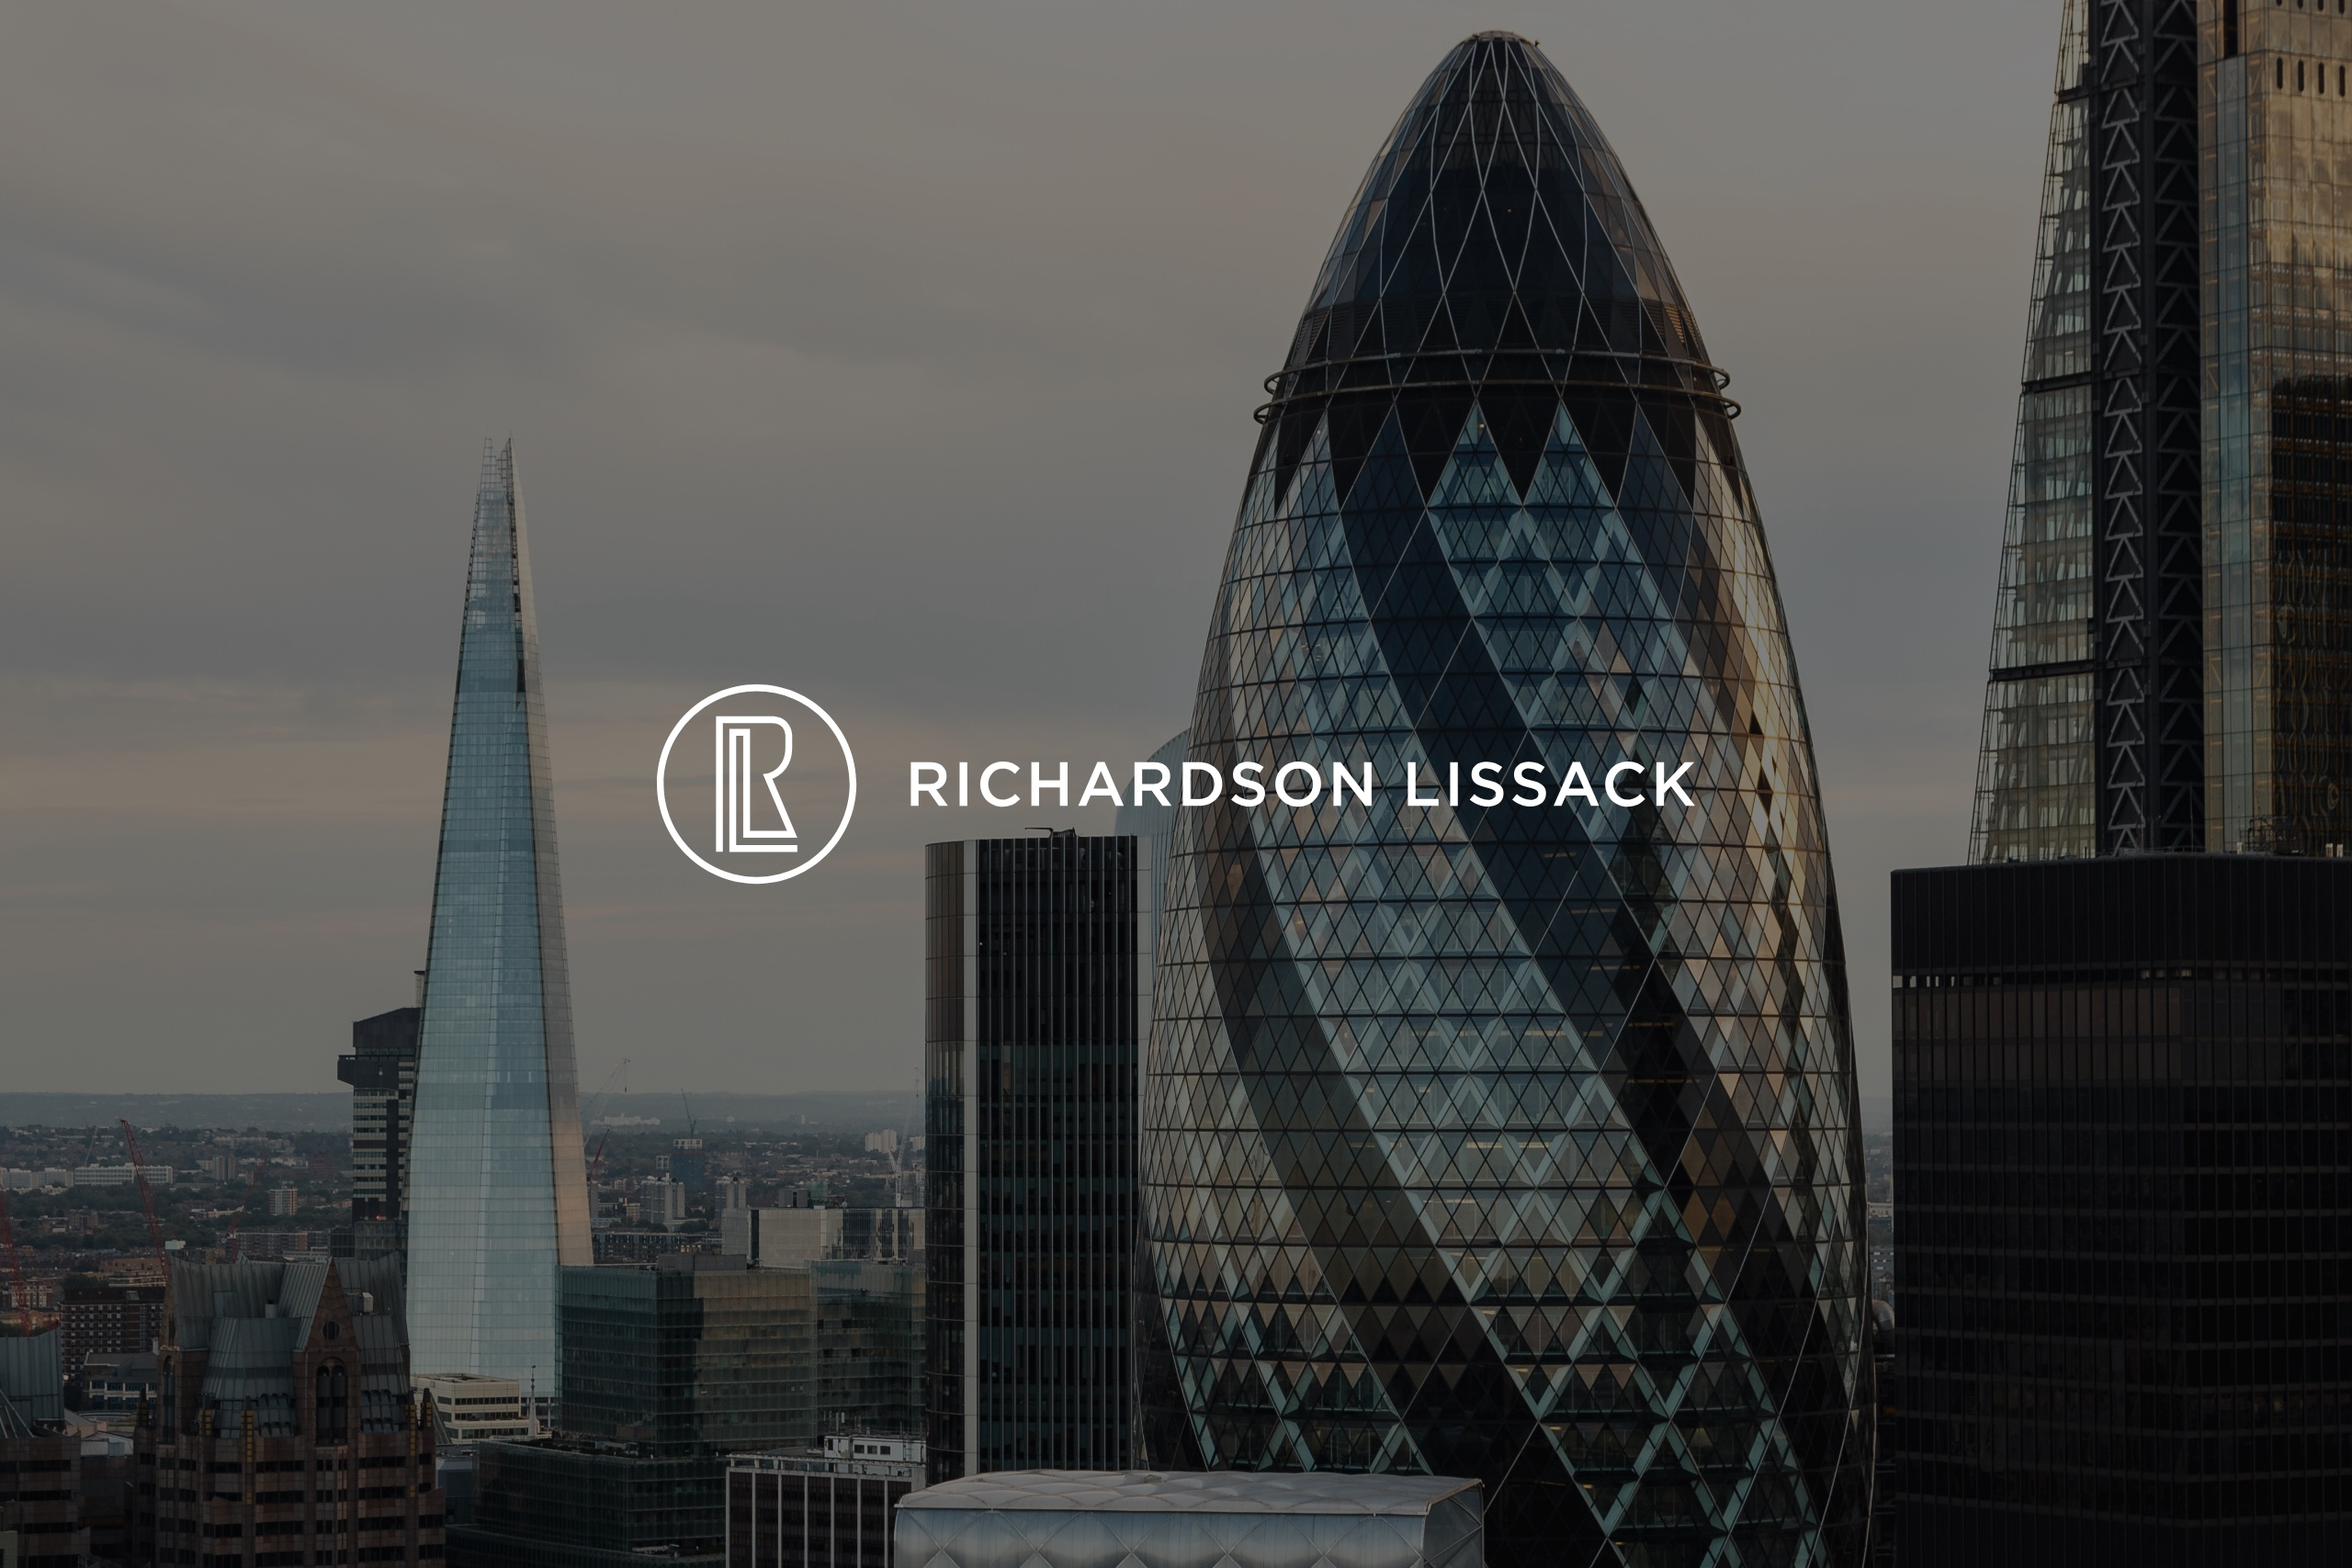 Richardson Lissack corporate identity